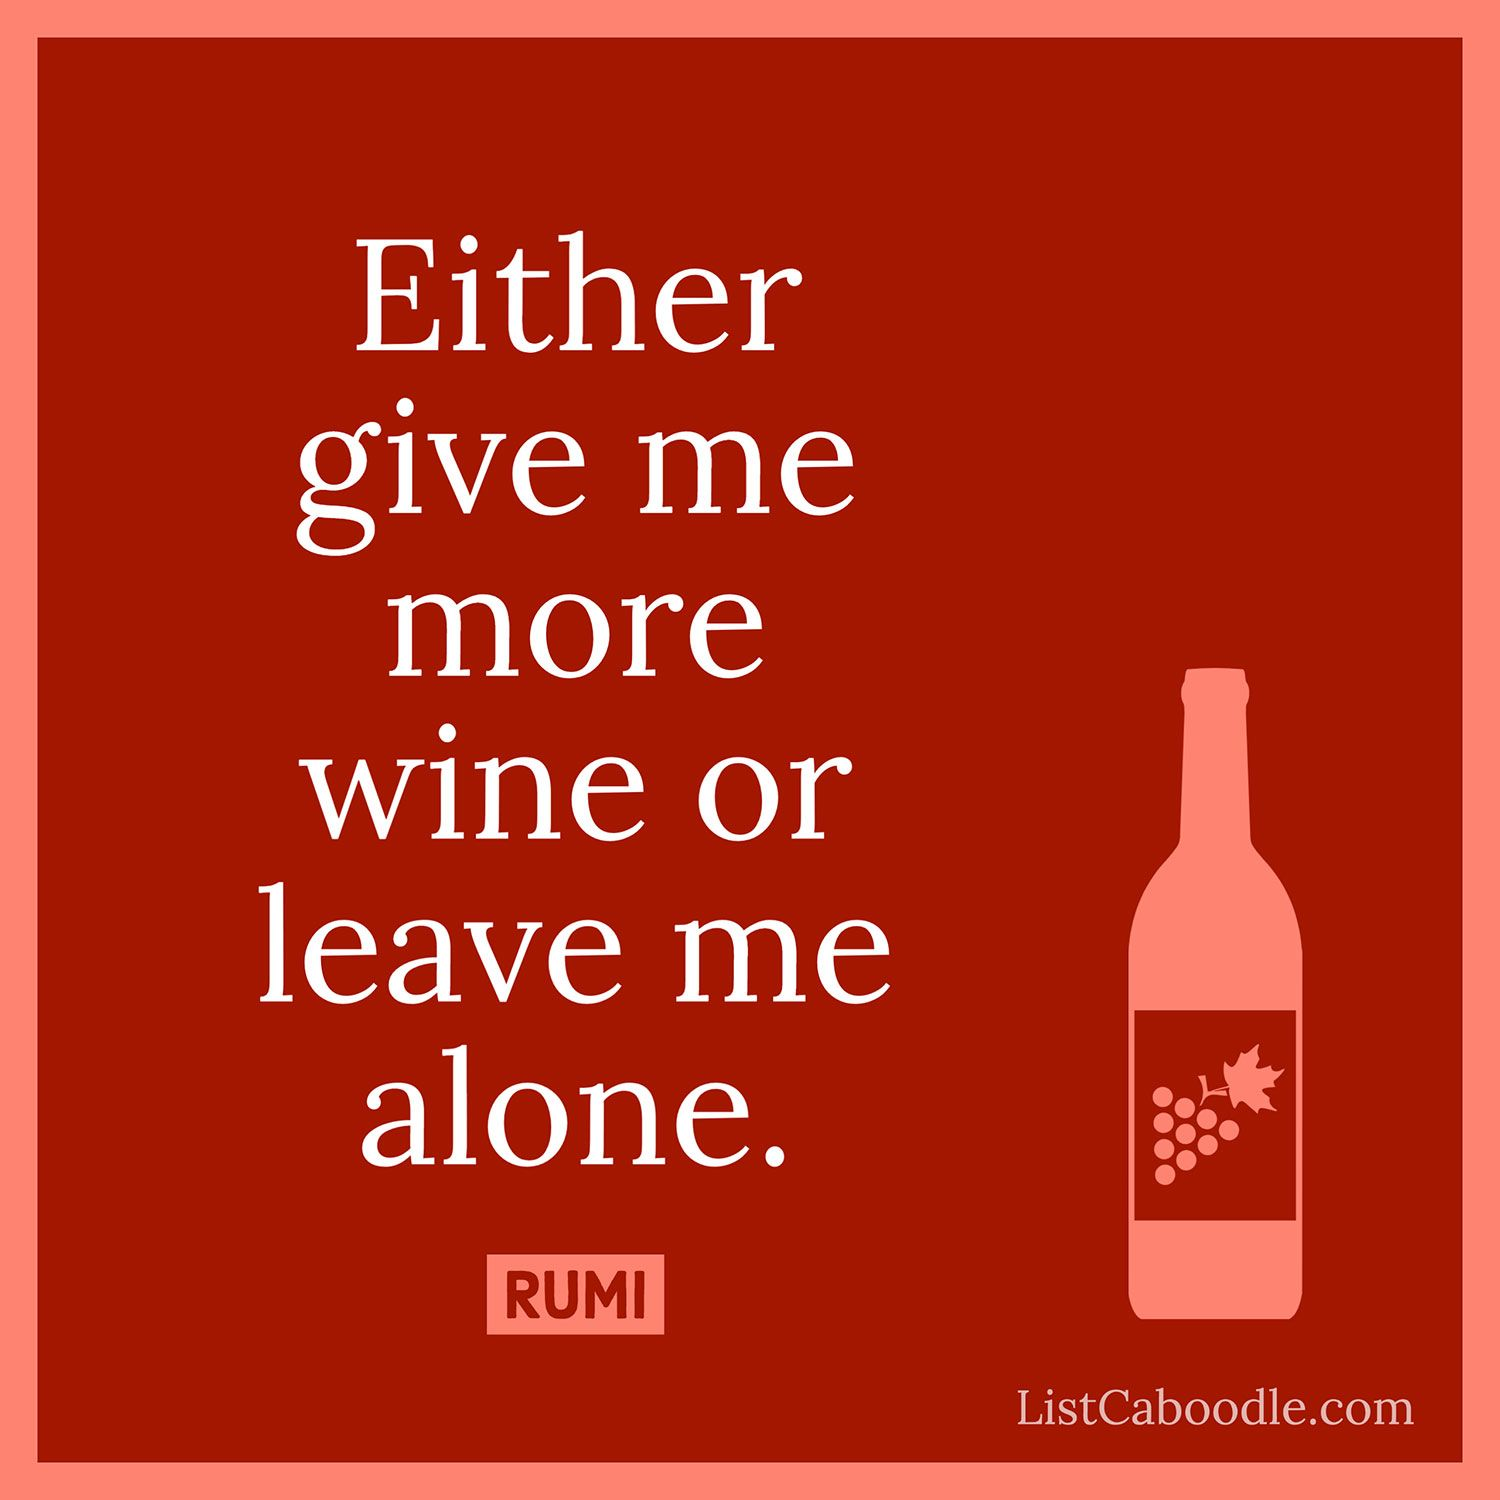 83 Funny Drinking Quotes For Big Laughs Listcaboodle In 2021 Funny Drinking Quotes Drinking Quotes Wine Quotes Funny